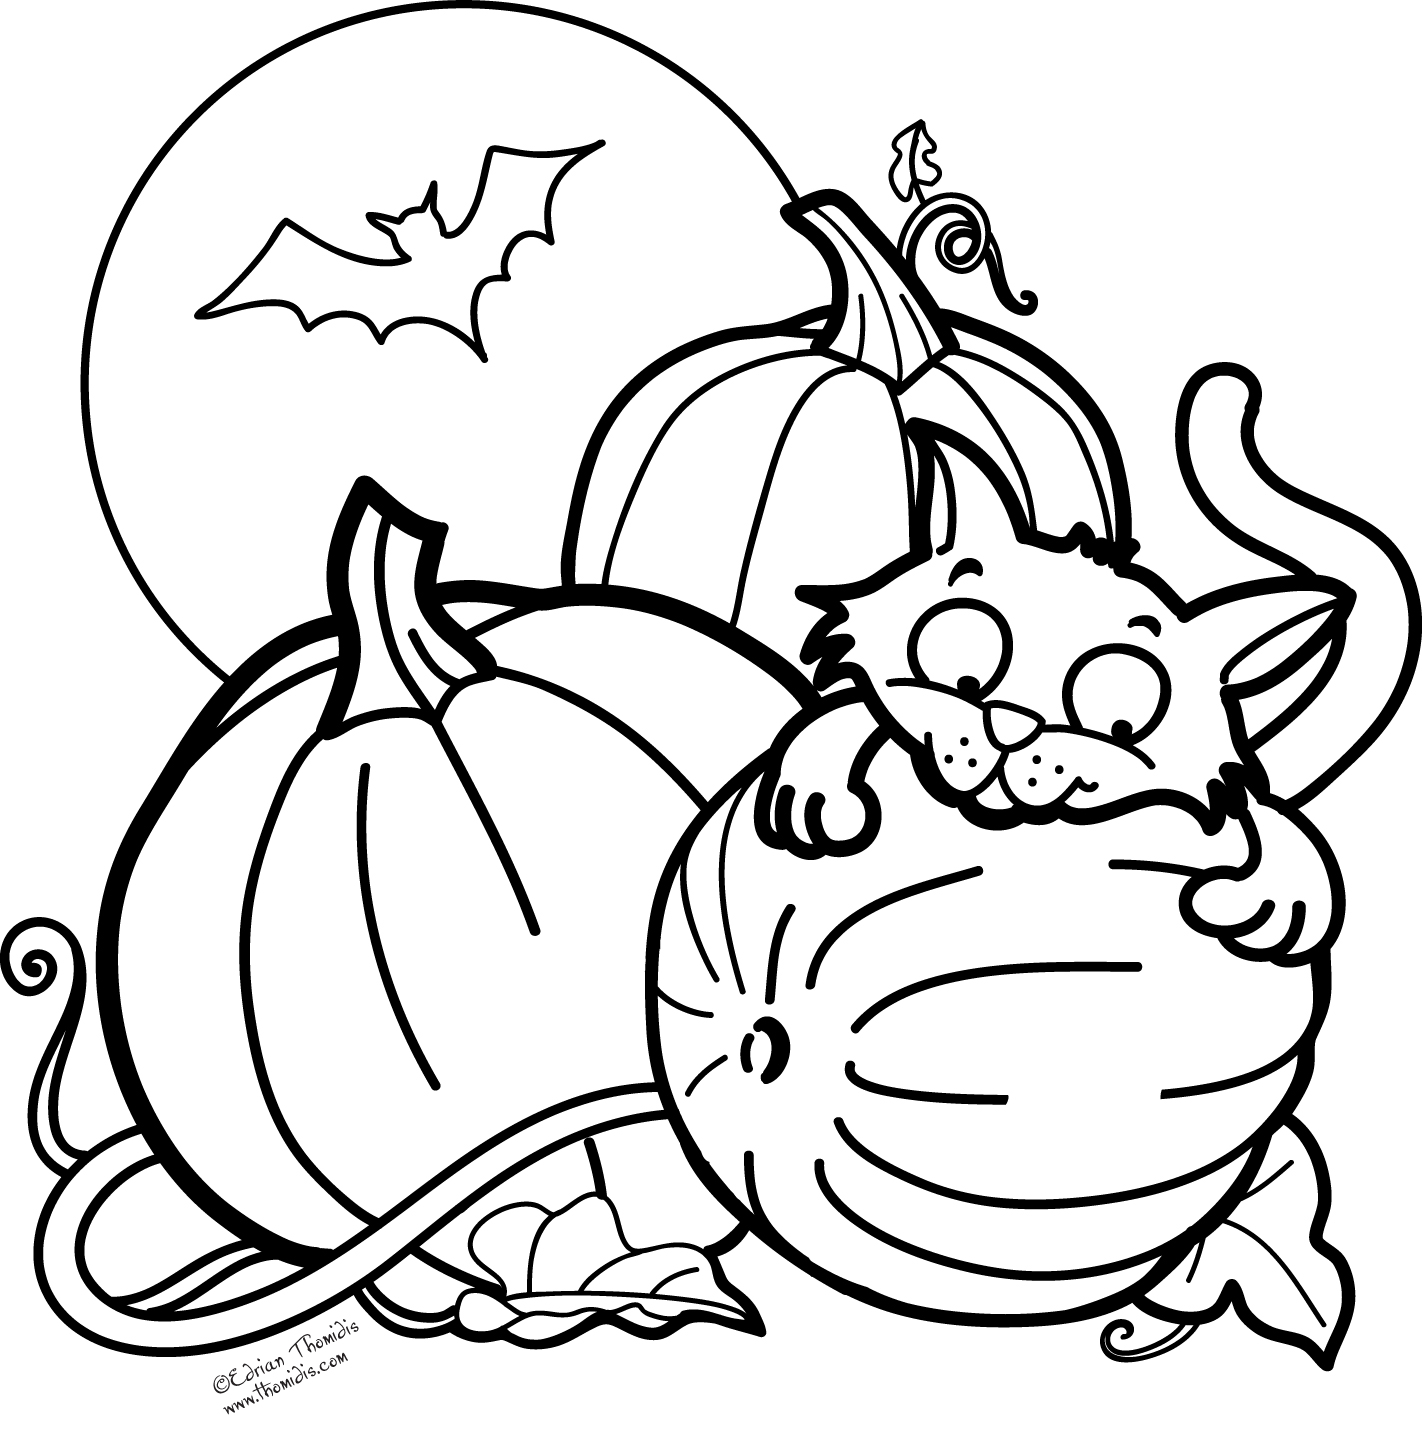 halloween pictures to color pumpkin halloween cat and pumpkin coloring pages festival pumpkin pictures halloween to color